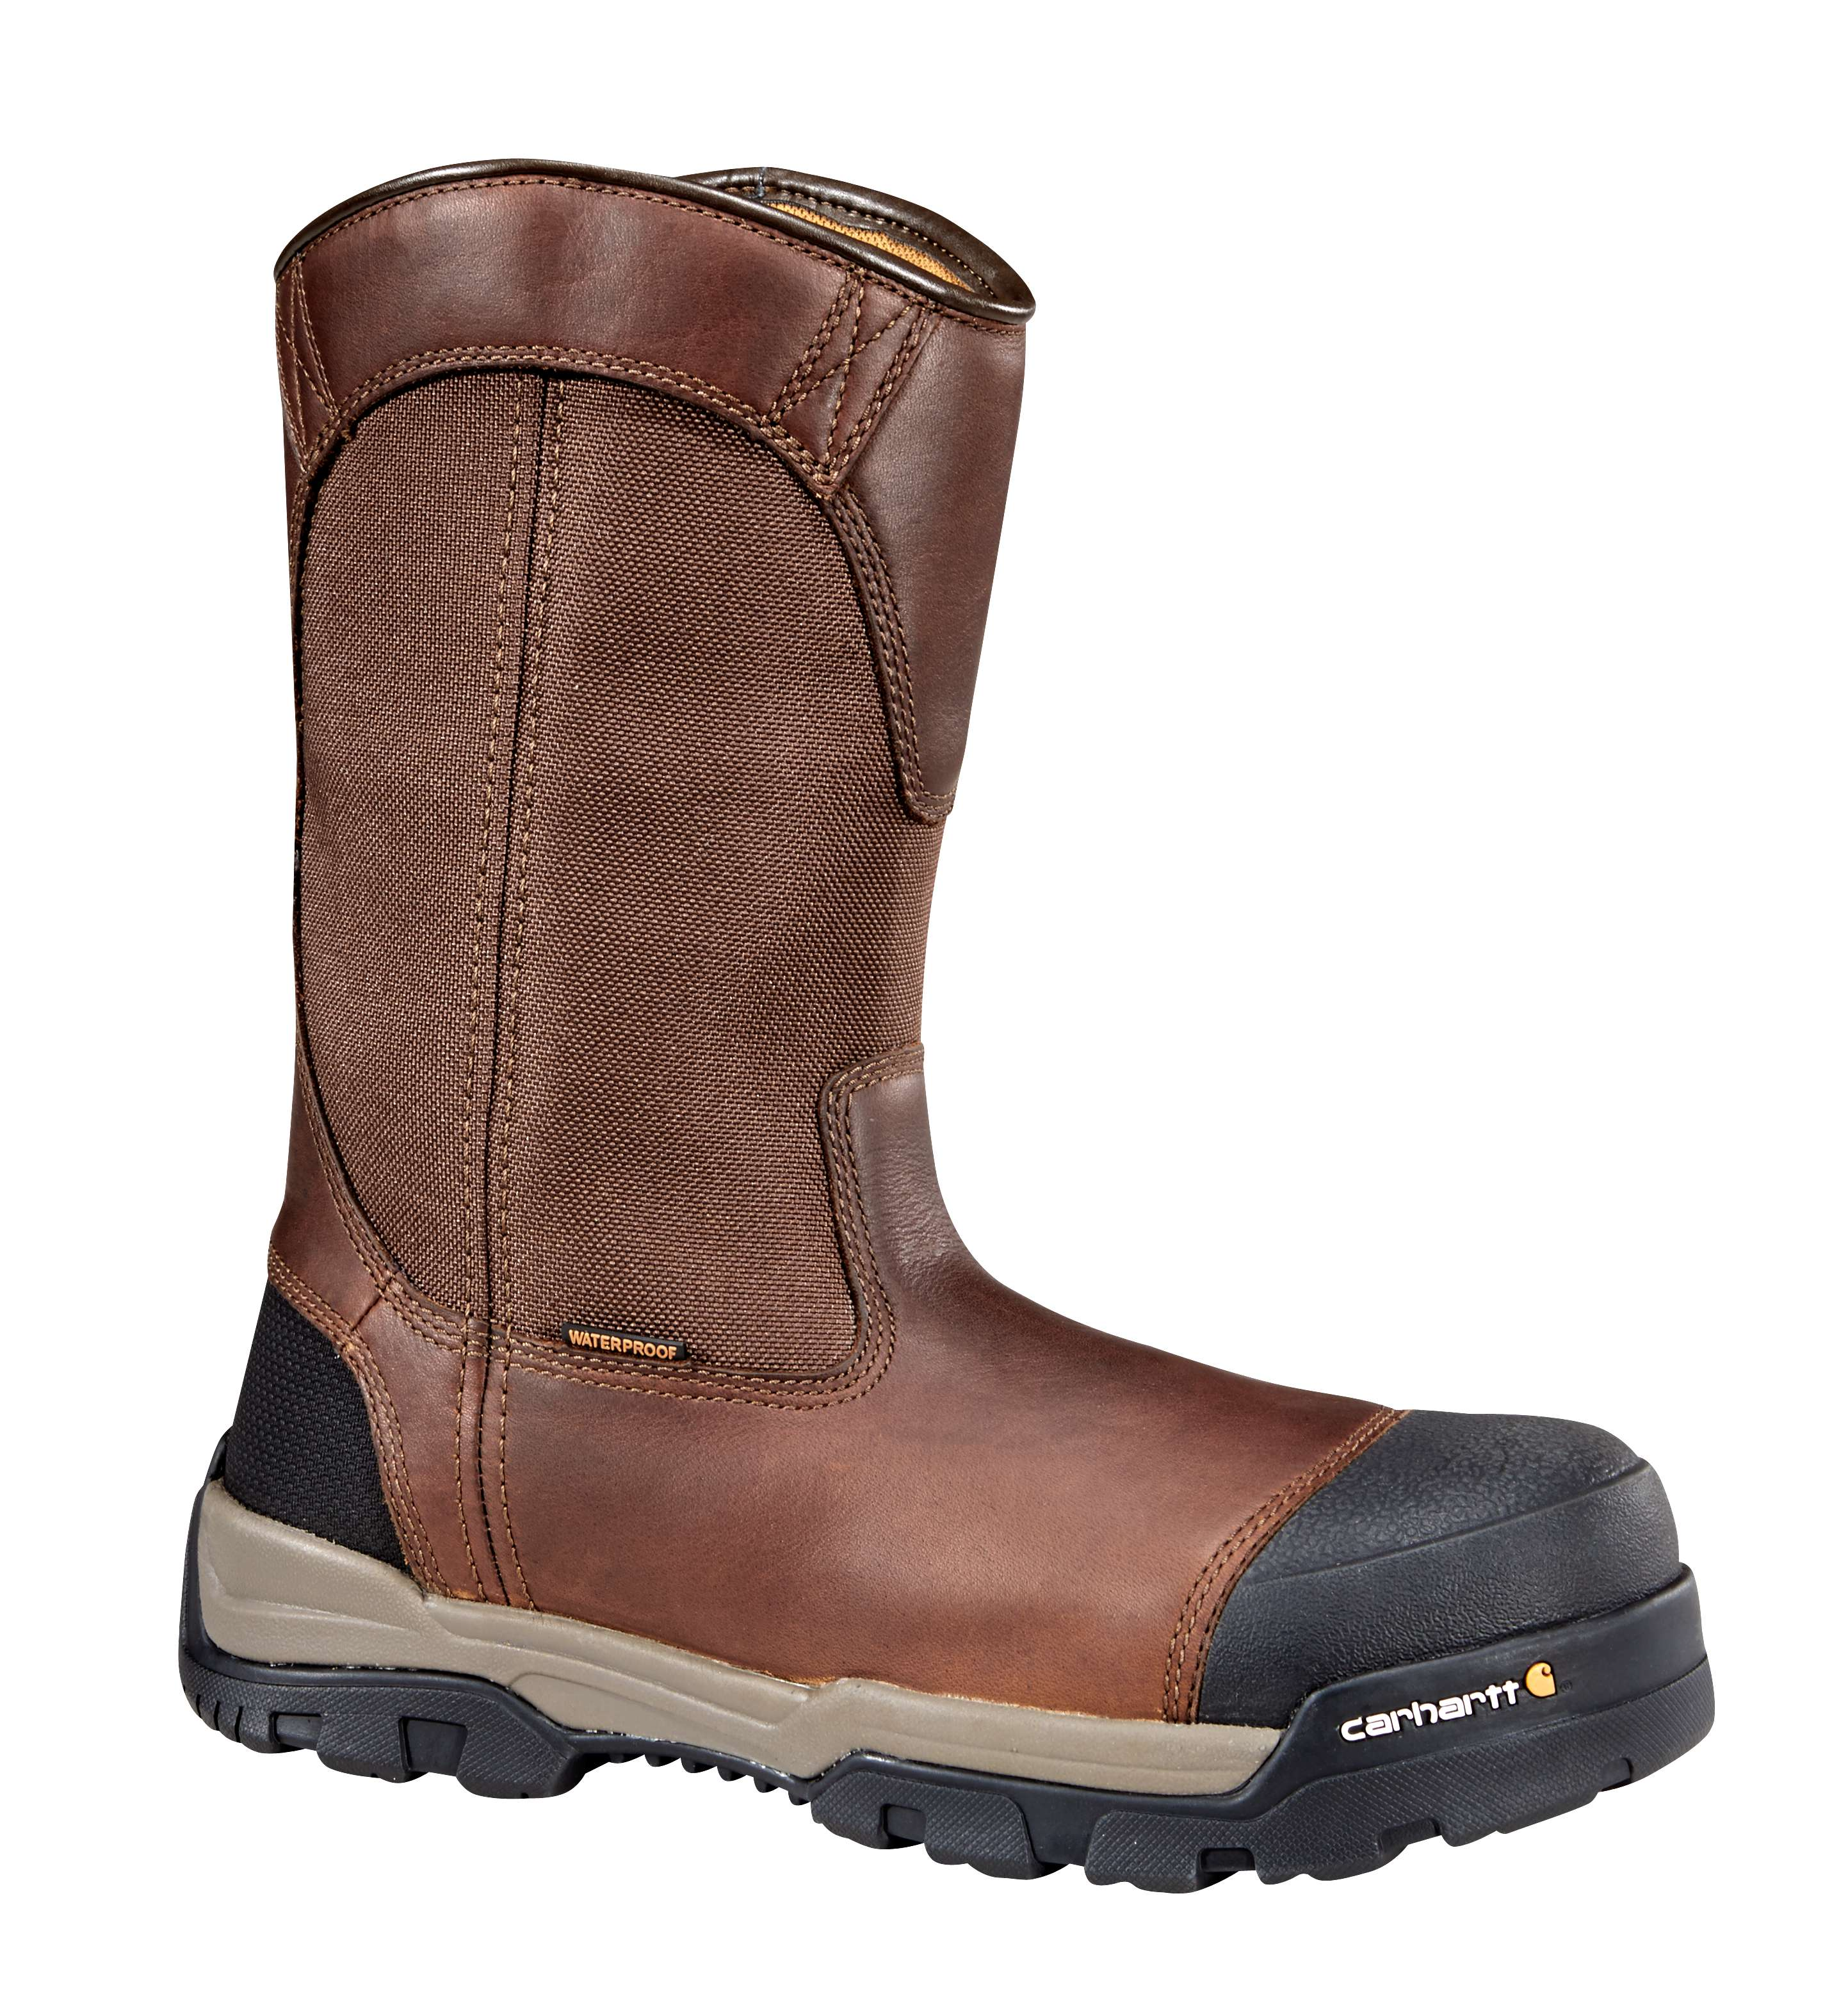 Carhartt Ground Force 10-inch Composite Toe Wellington Boot